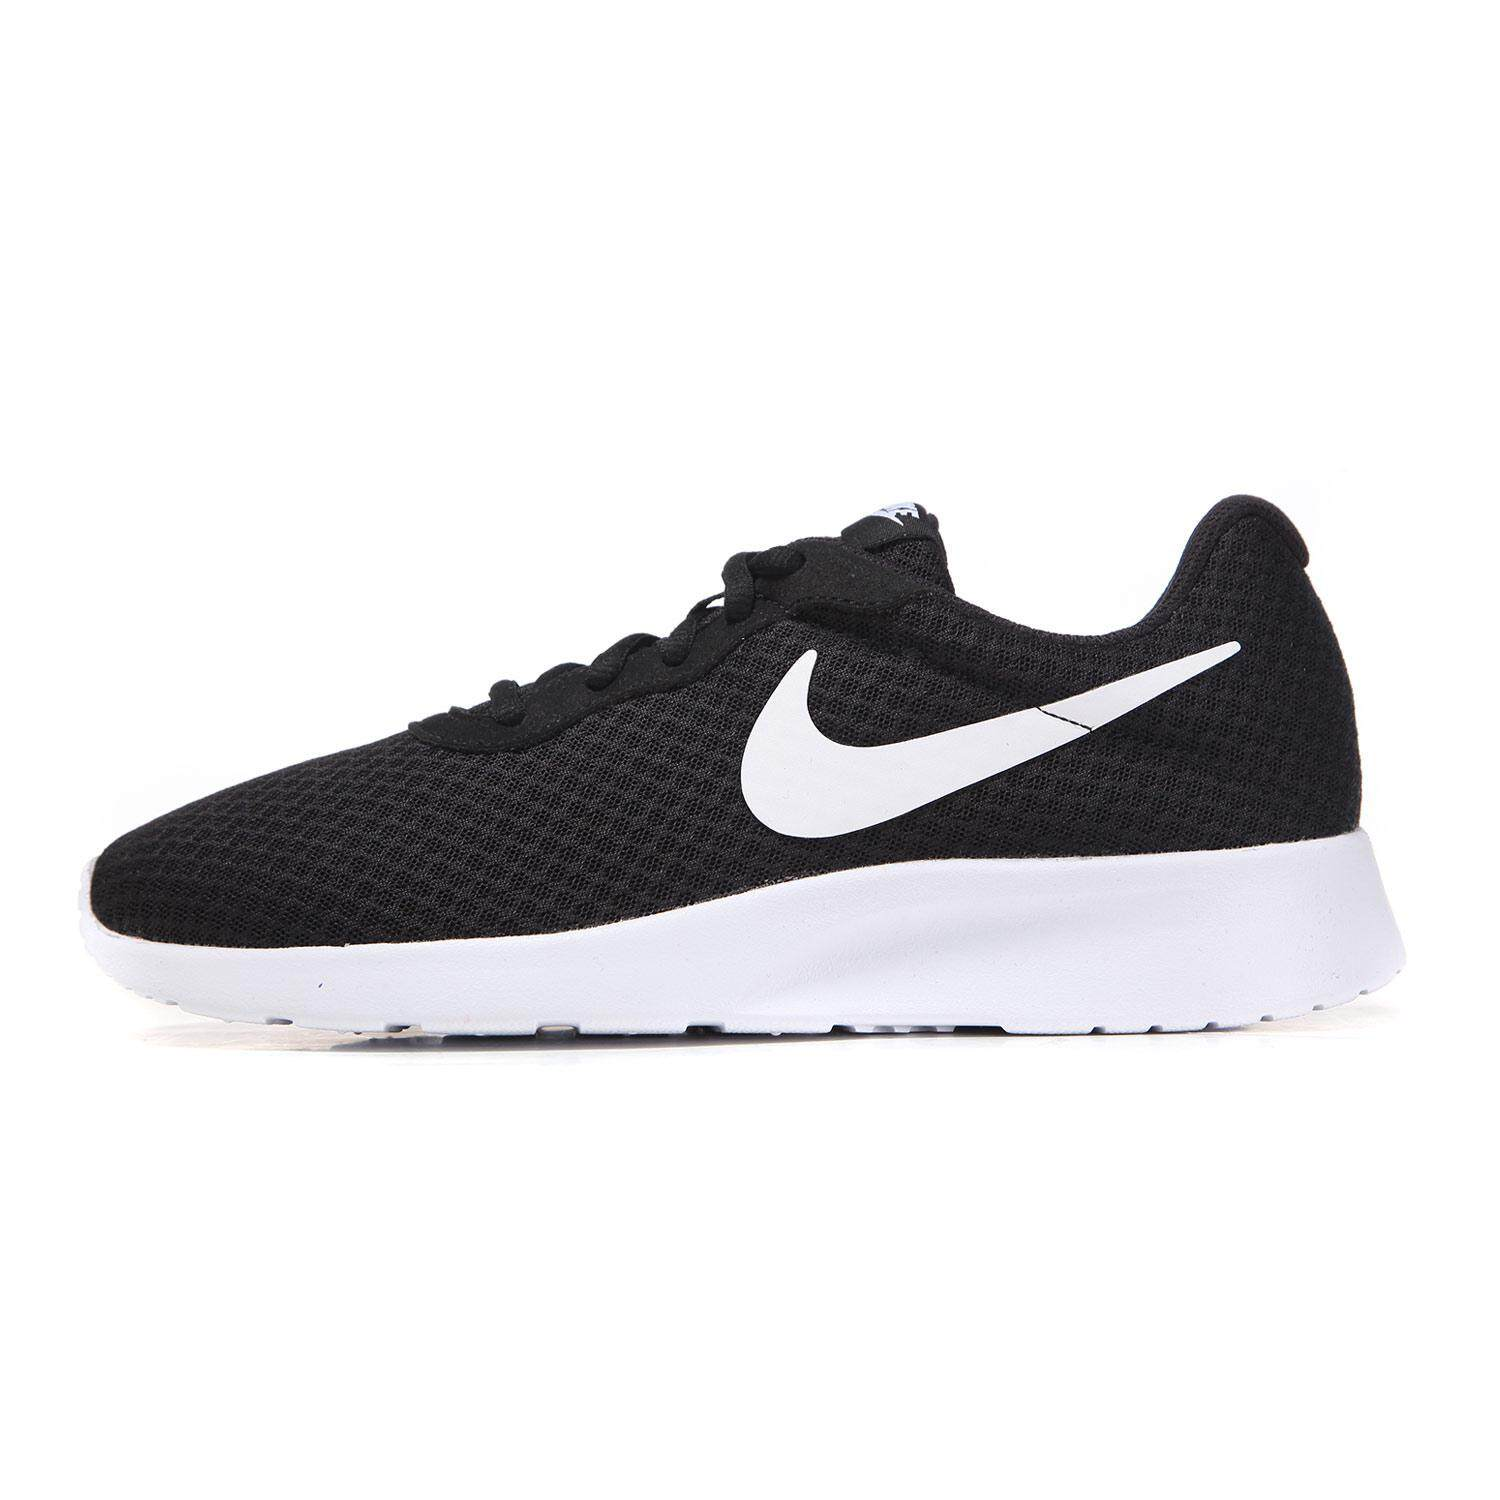 b273b059ed4 NIKE TANJUN men s shoes women s shoes sports casual light mesh running shoes  812654-010 812654